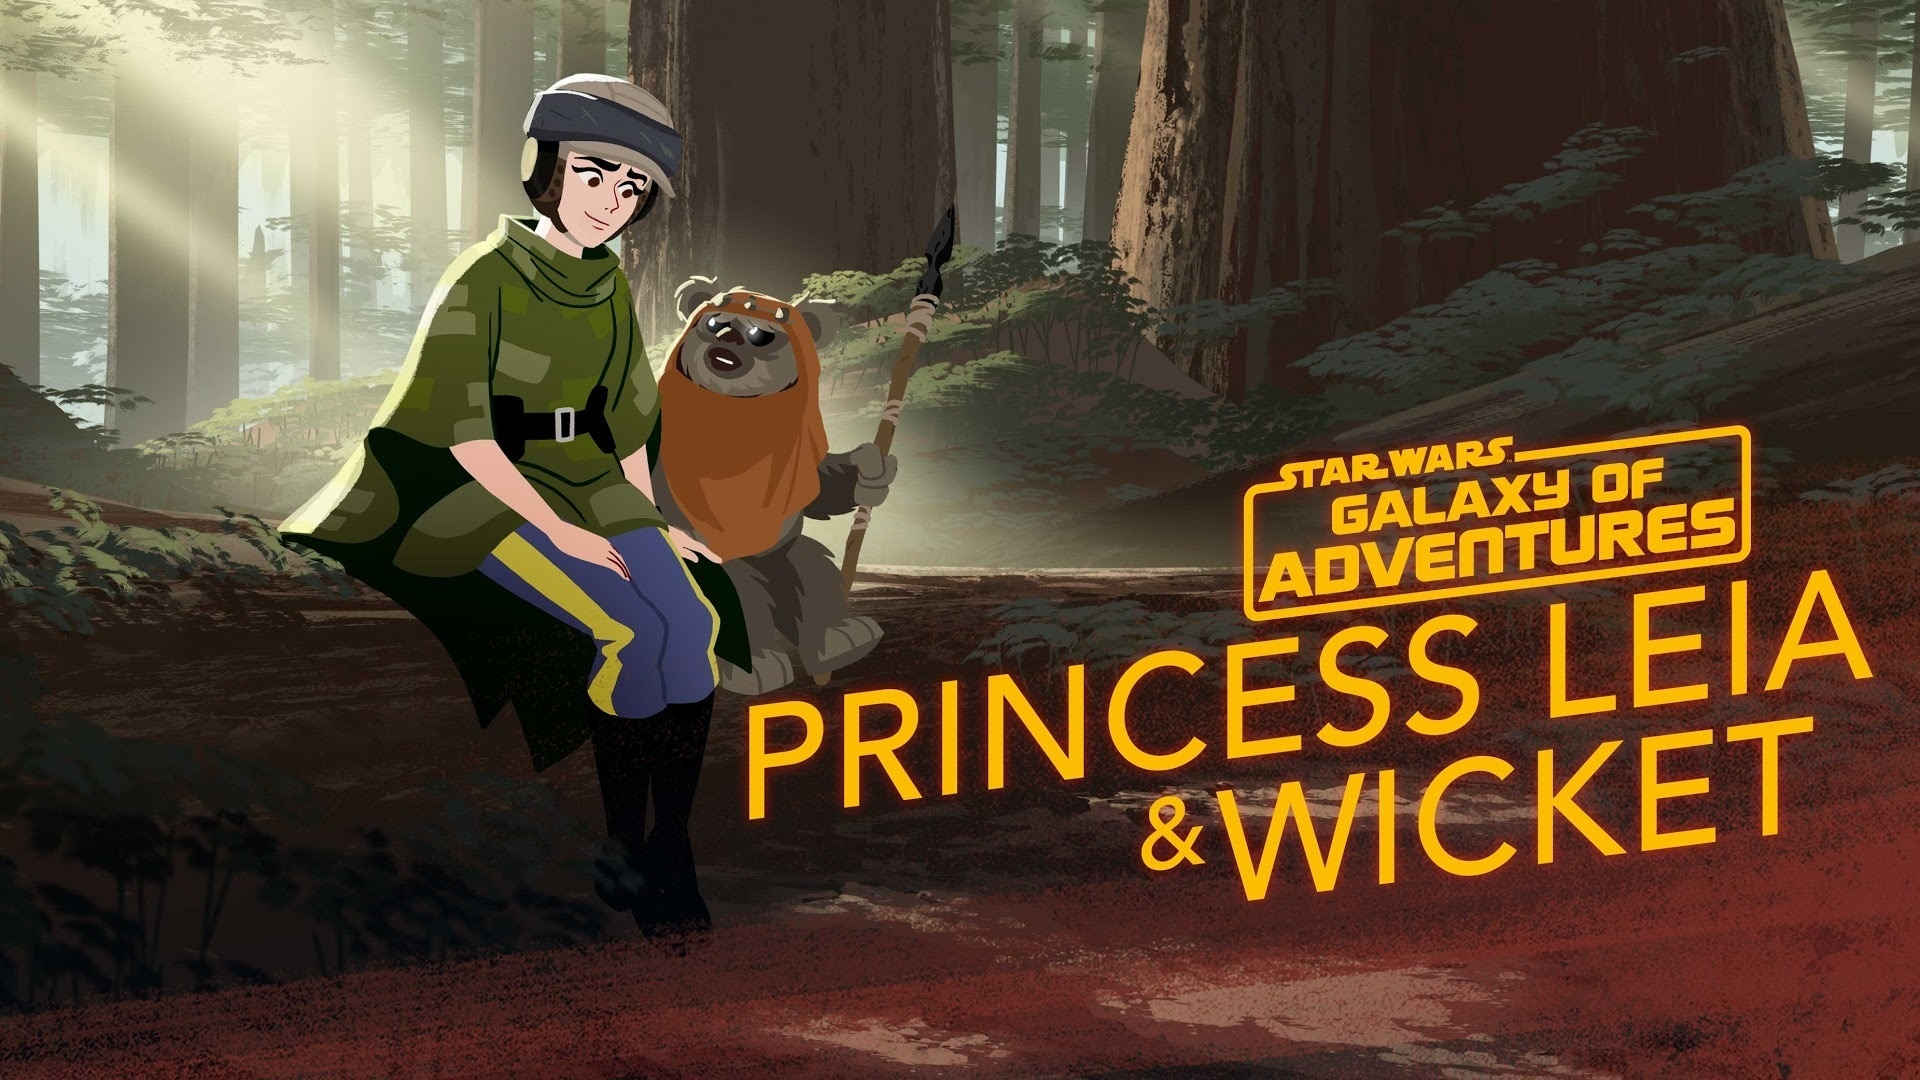 Princess Leia - An Unexpected Friend | Star Wars Galaxy of Adventures